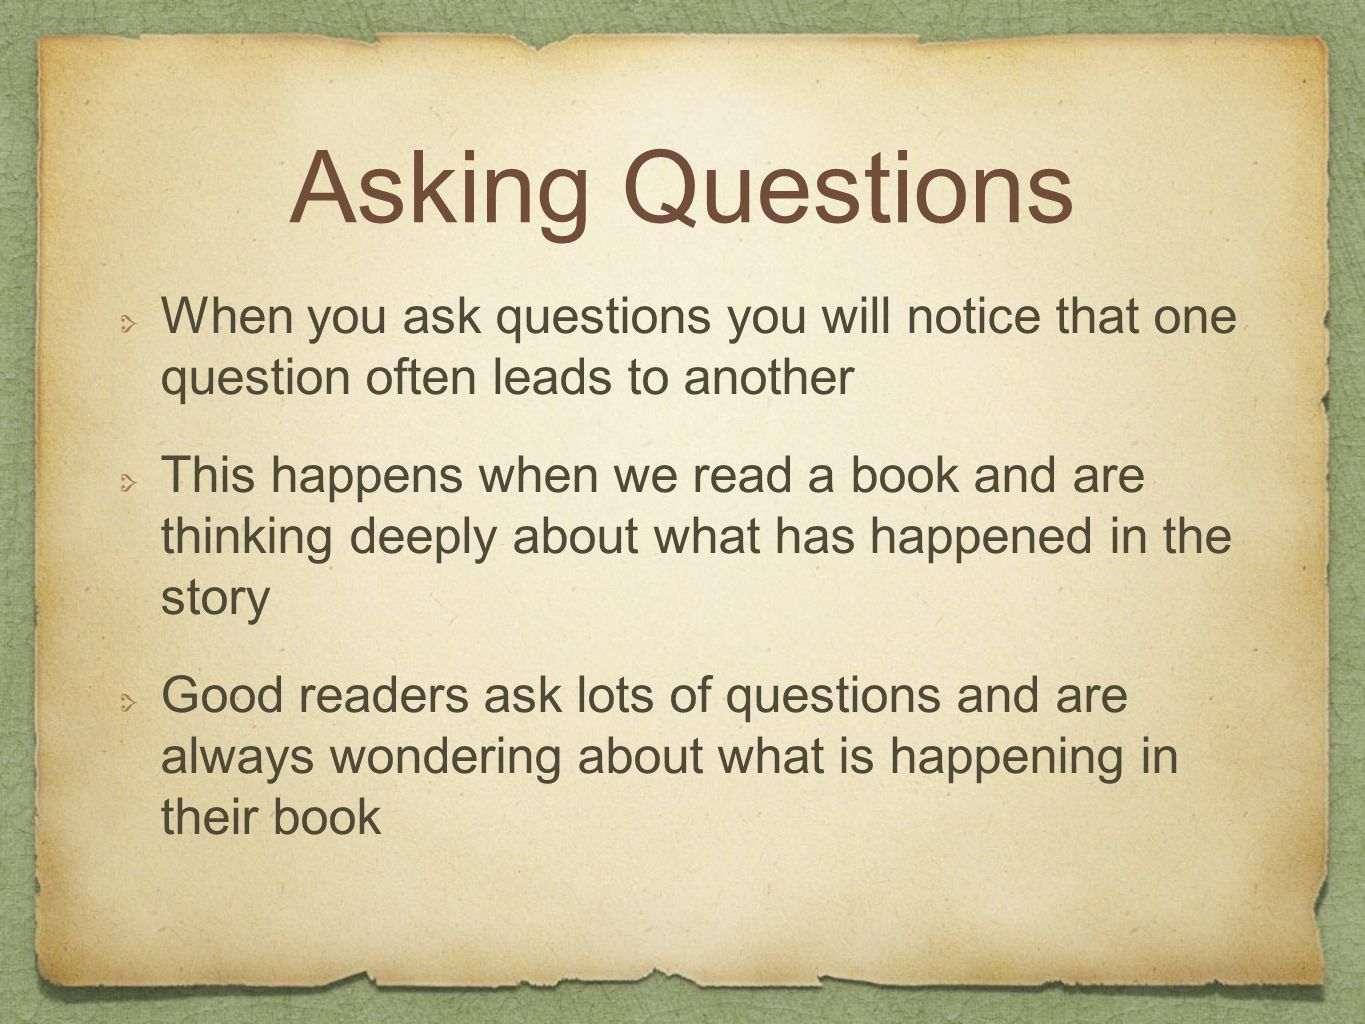 Asking Questions When you ask questions you will notice that one question often leads to another.